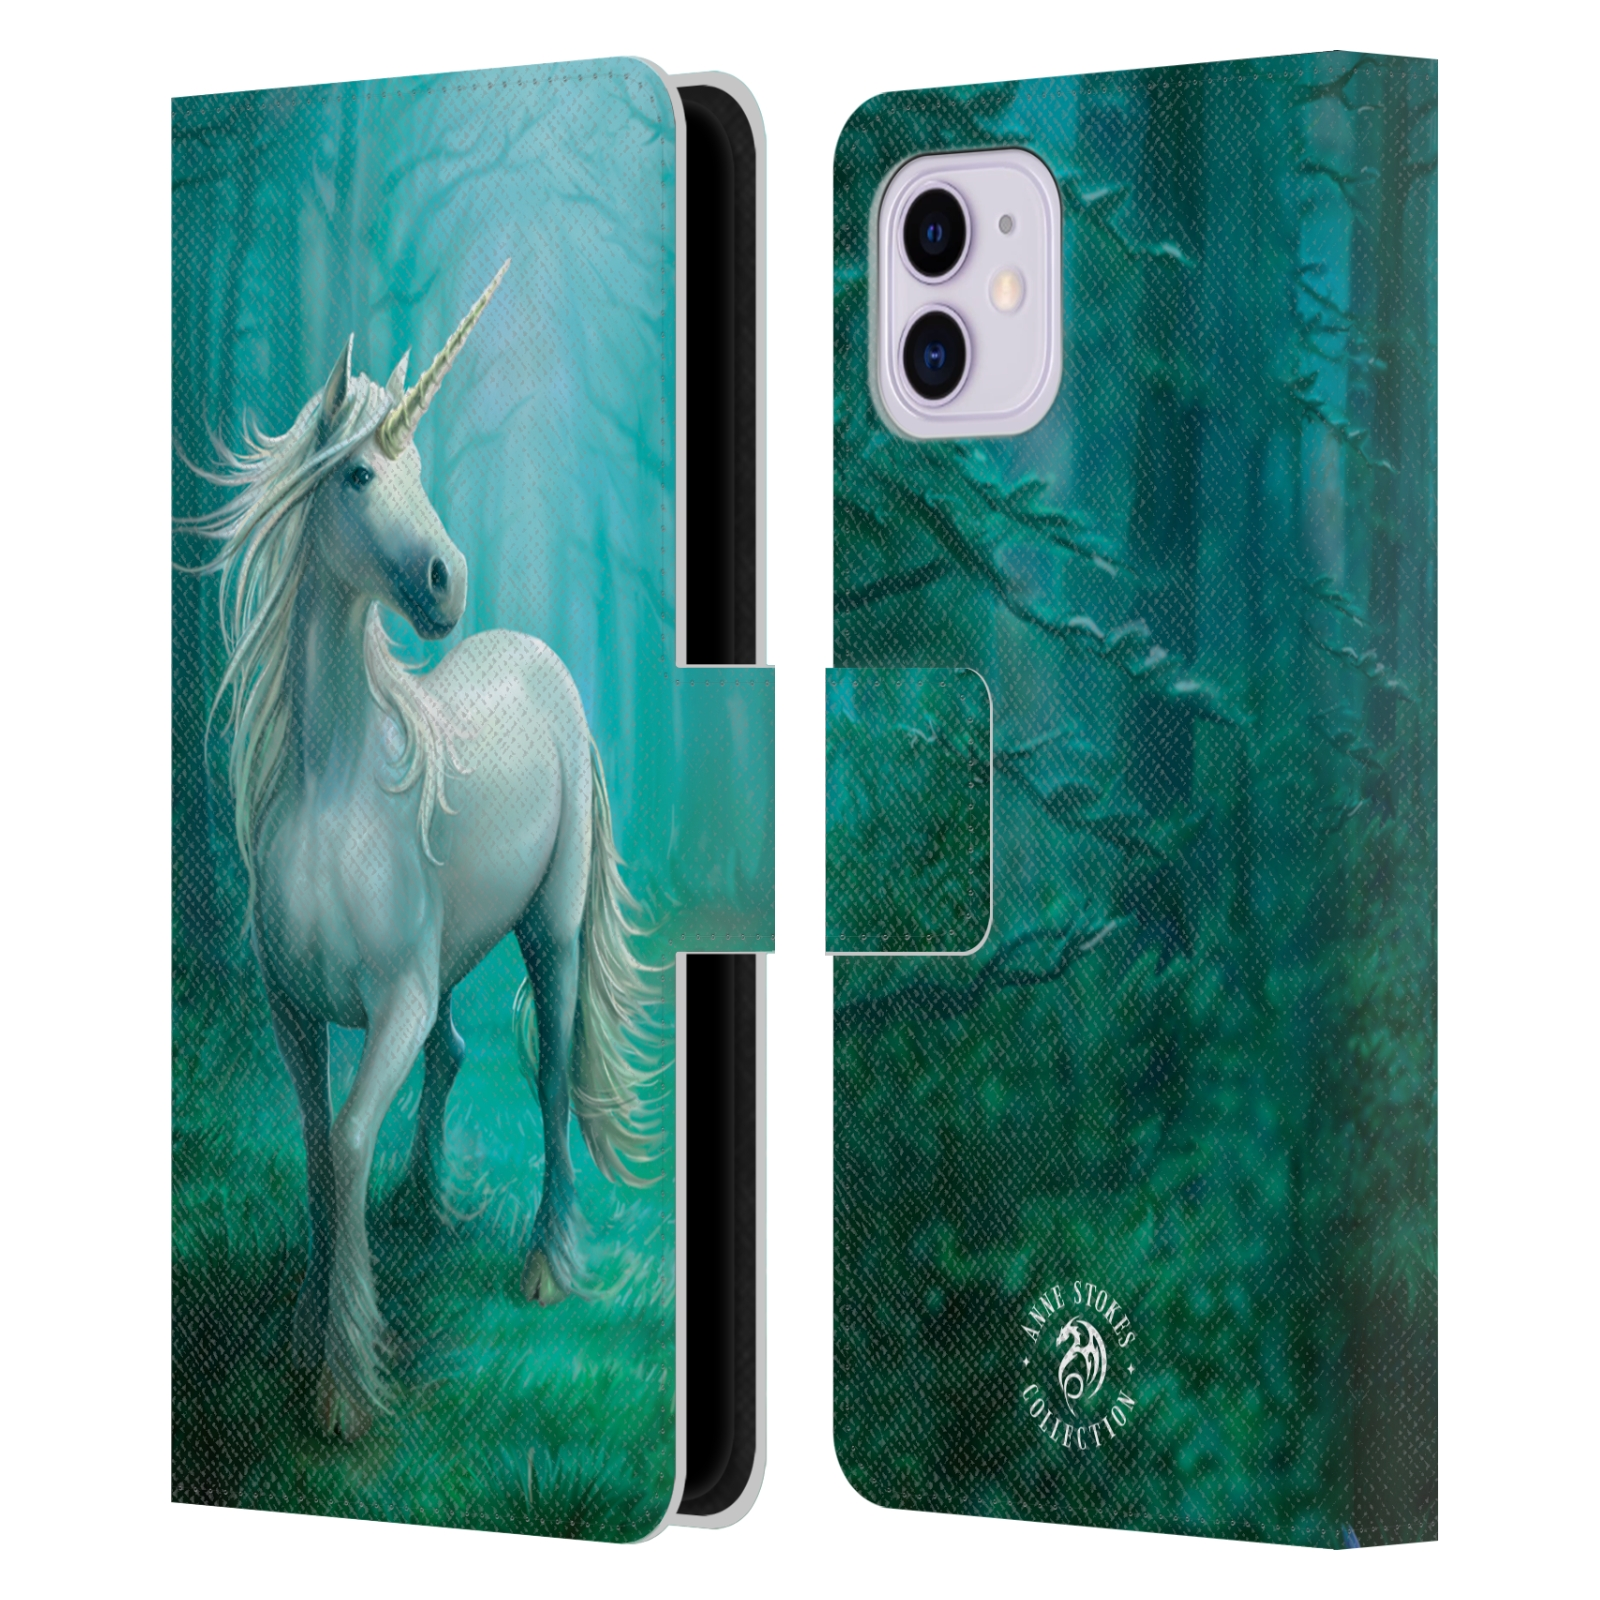 Pouzdro na mobil Apple Iphone 11 - Head Case - fantasy - jednorožec v lese